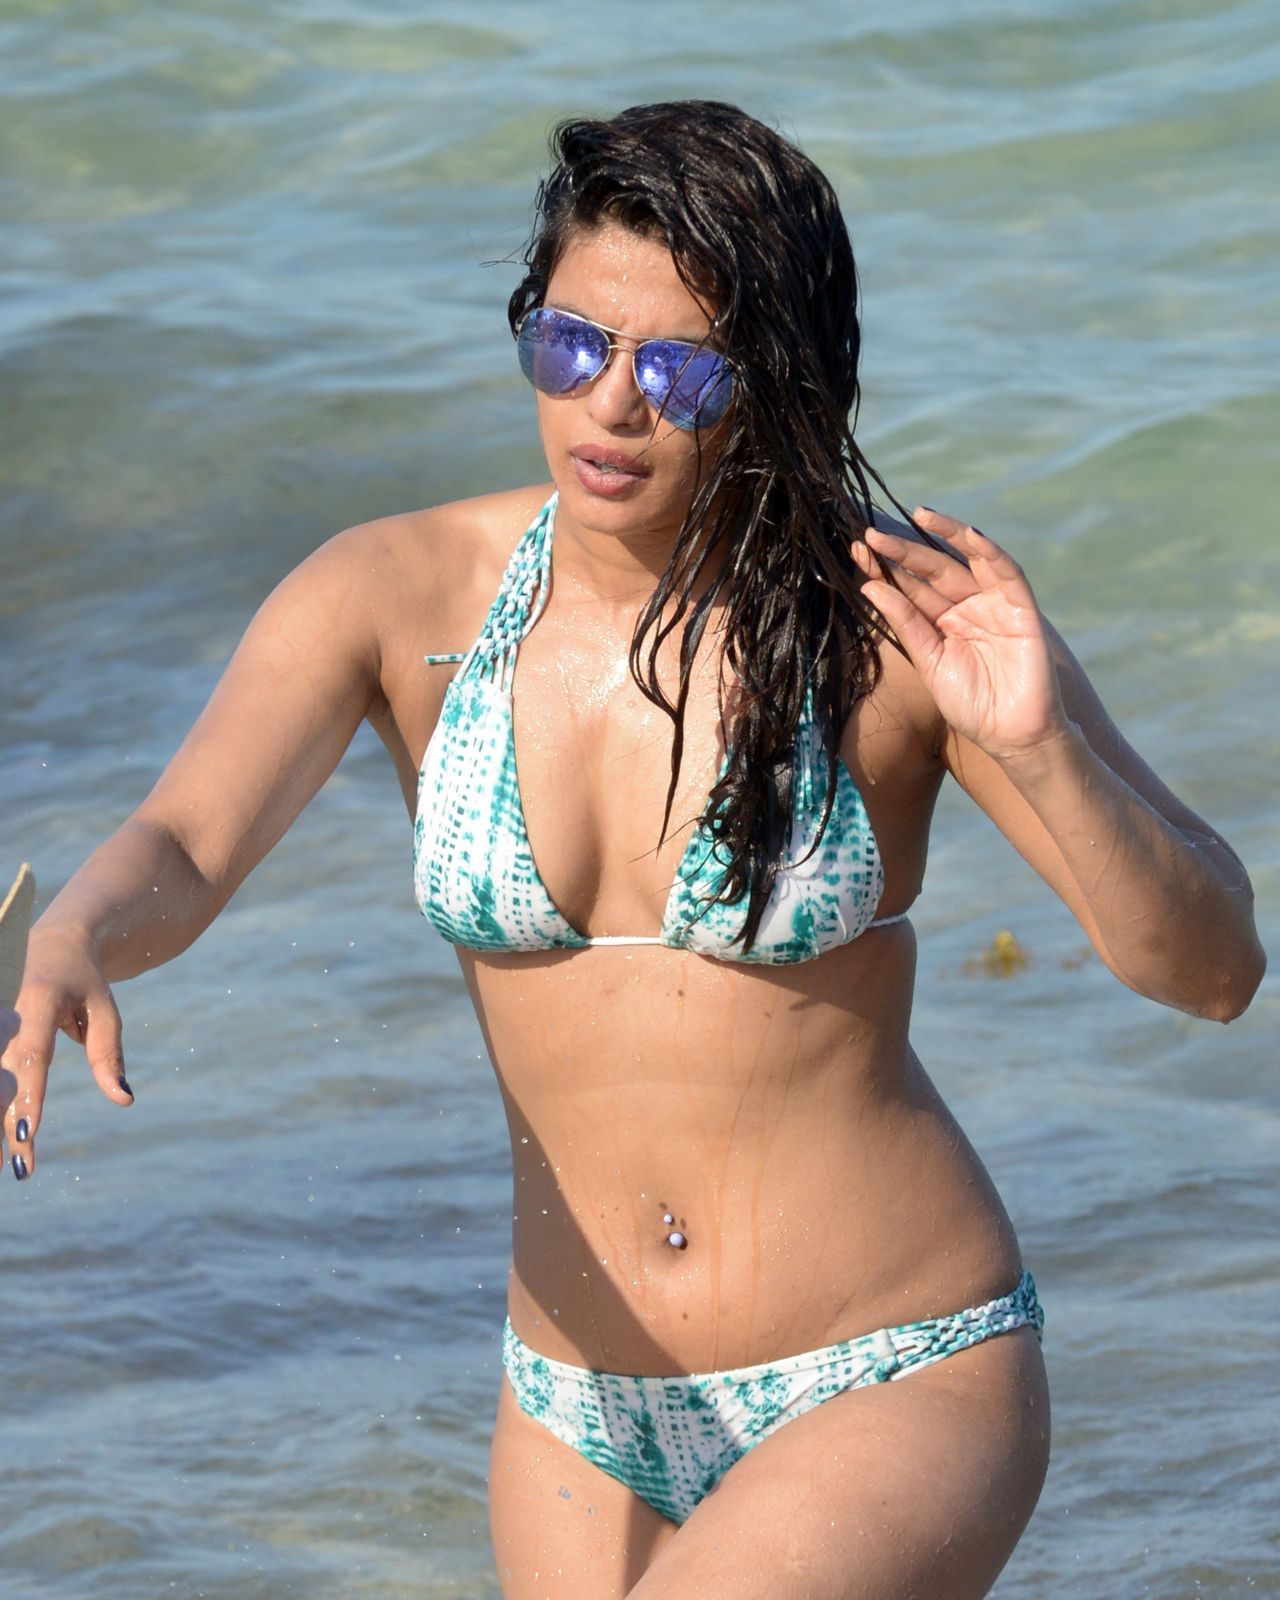 Priyanka Chopra In Bikini On The Beaches In Miami, Fl 05 -9268